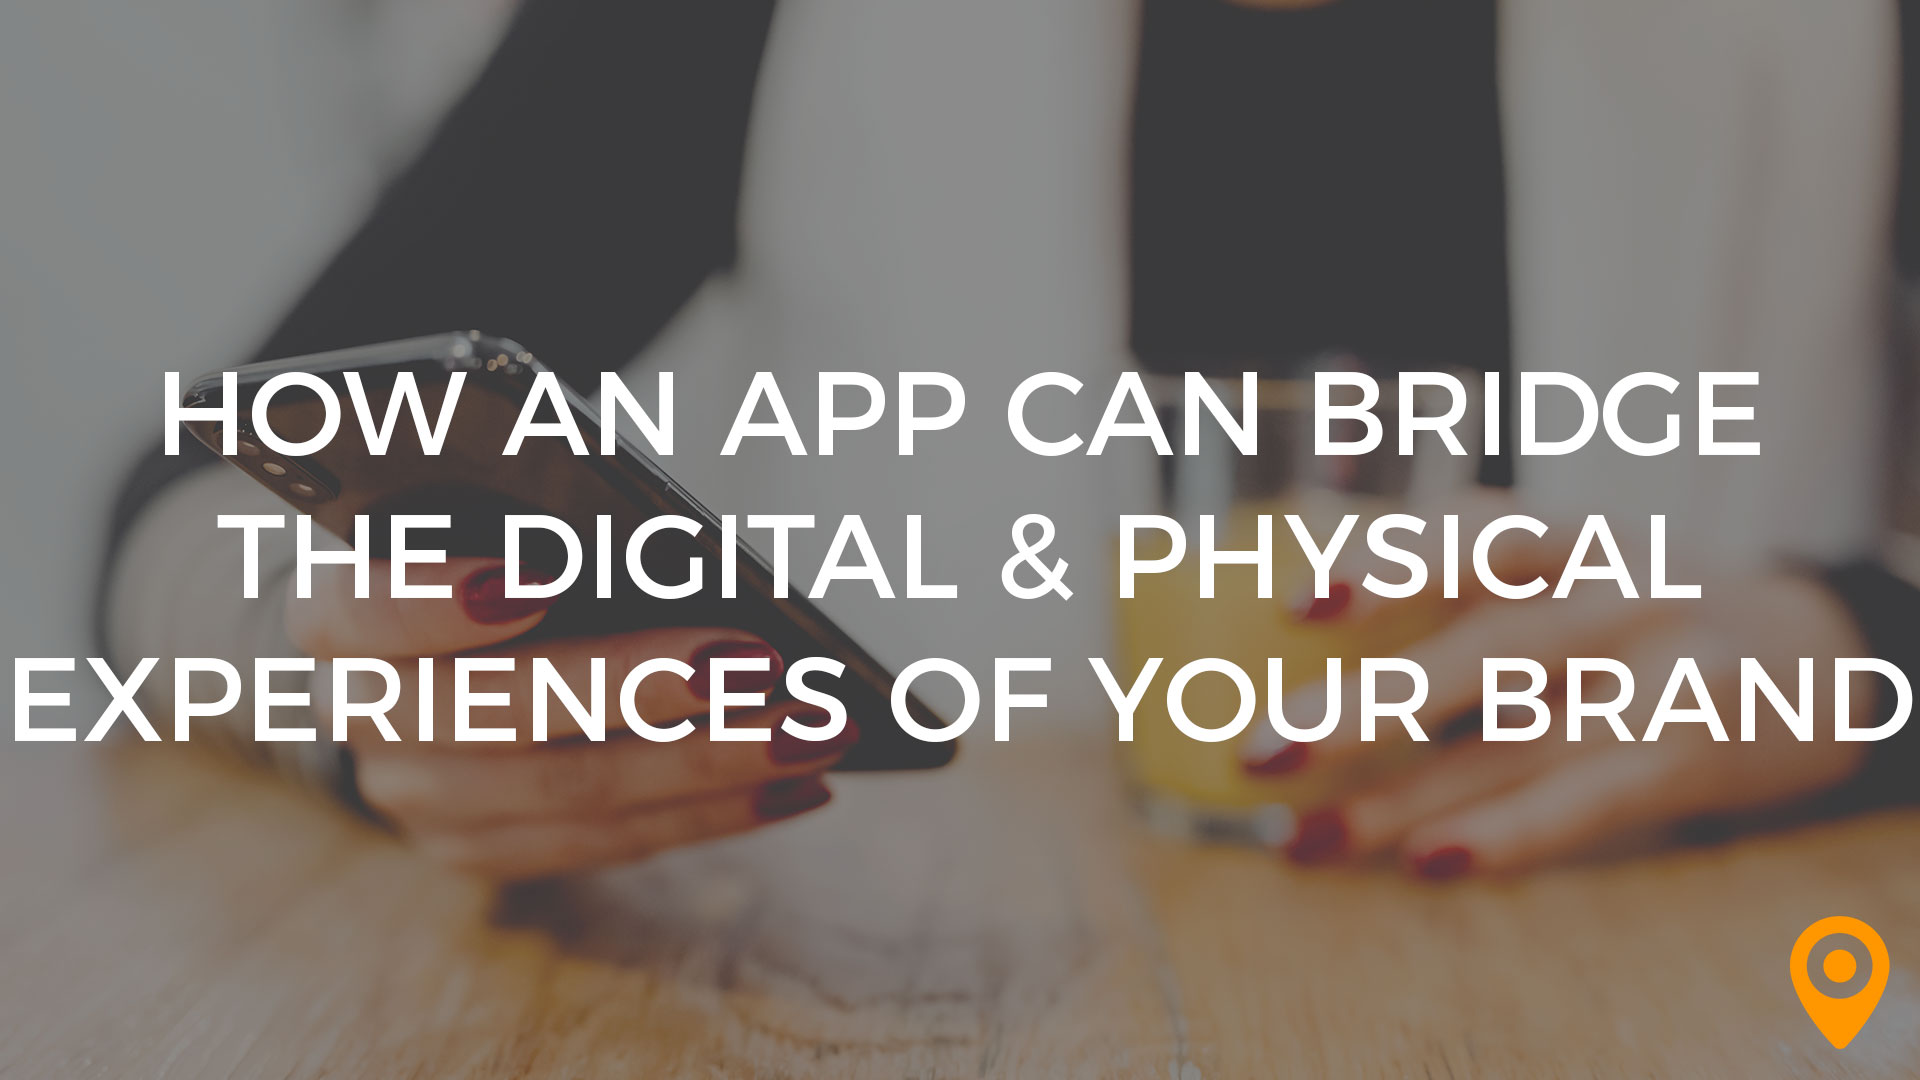 How An App Can Bridge the Digital & Physical Experiences of Your Brand